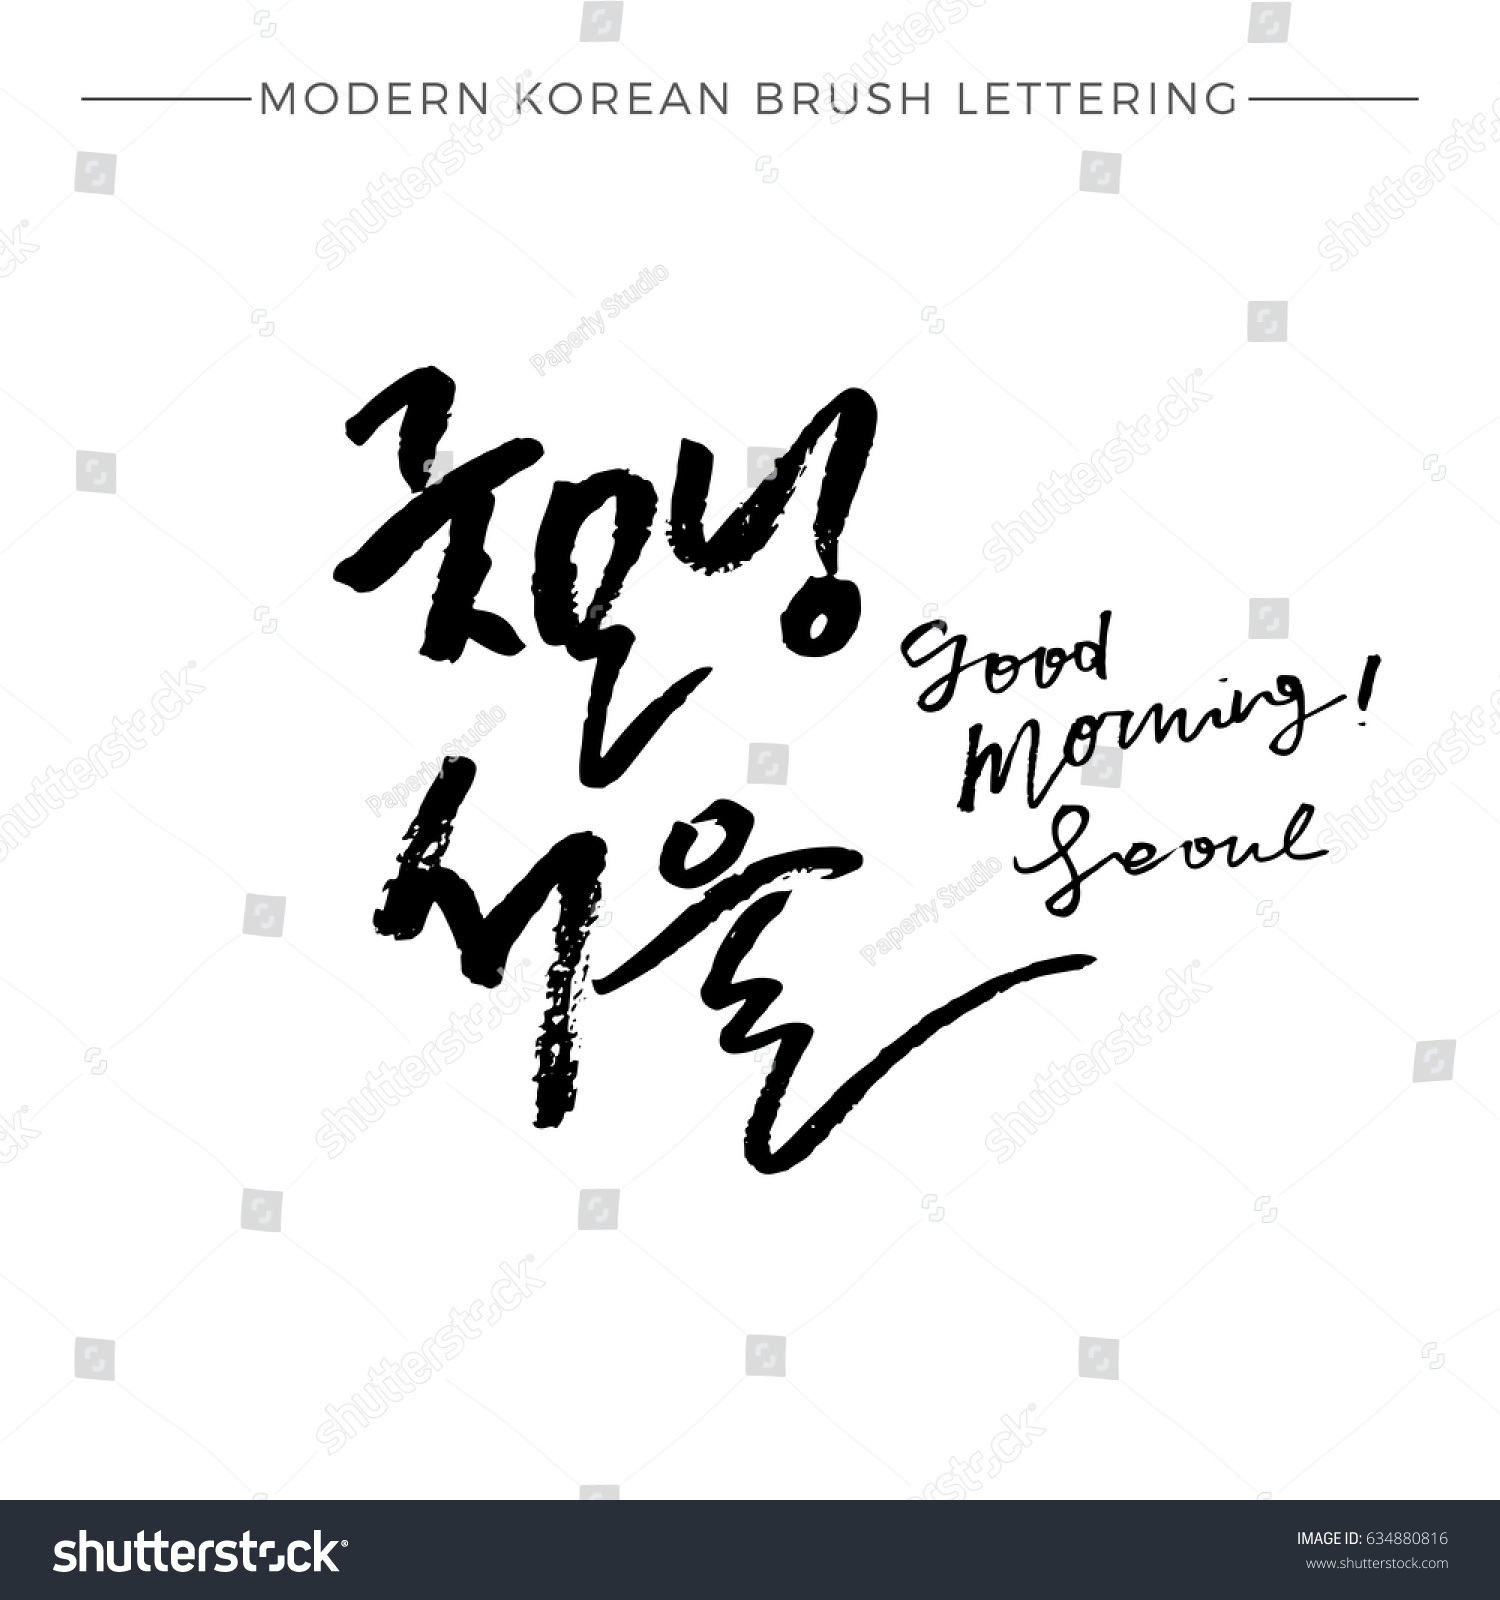 Good Morning In Korean Hangul : Korean calligraphy good morning seoul hangul stock vector